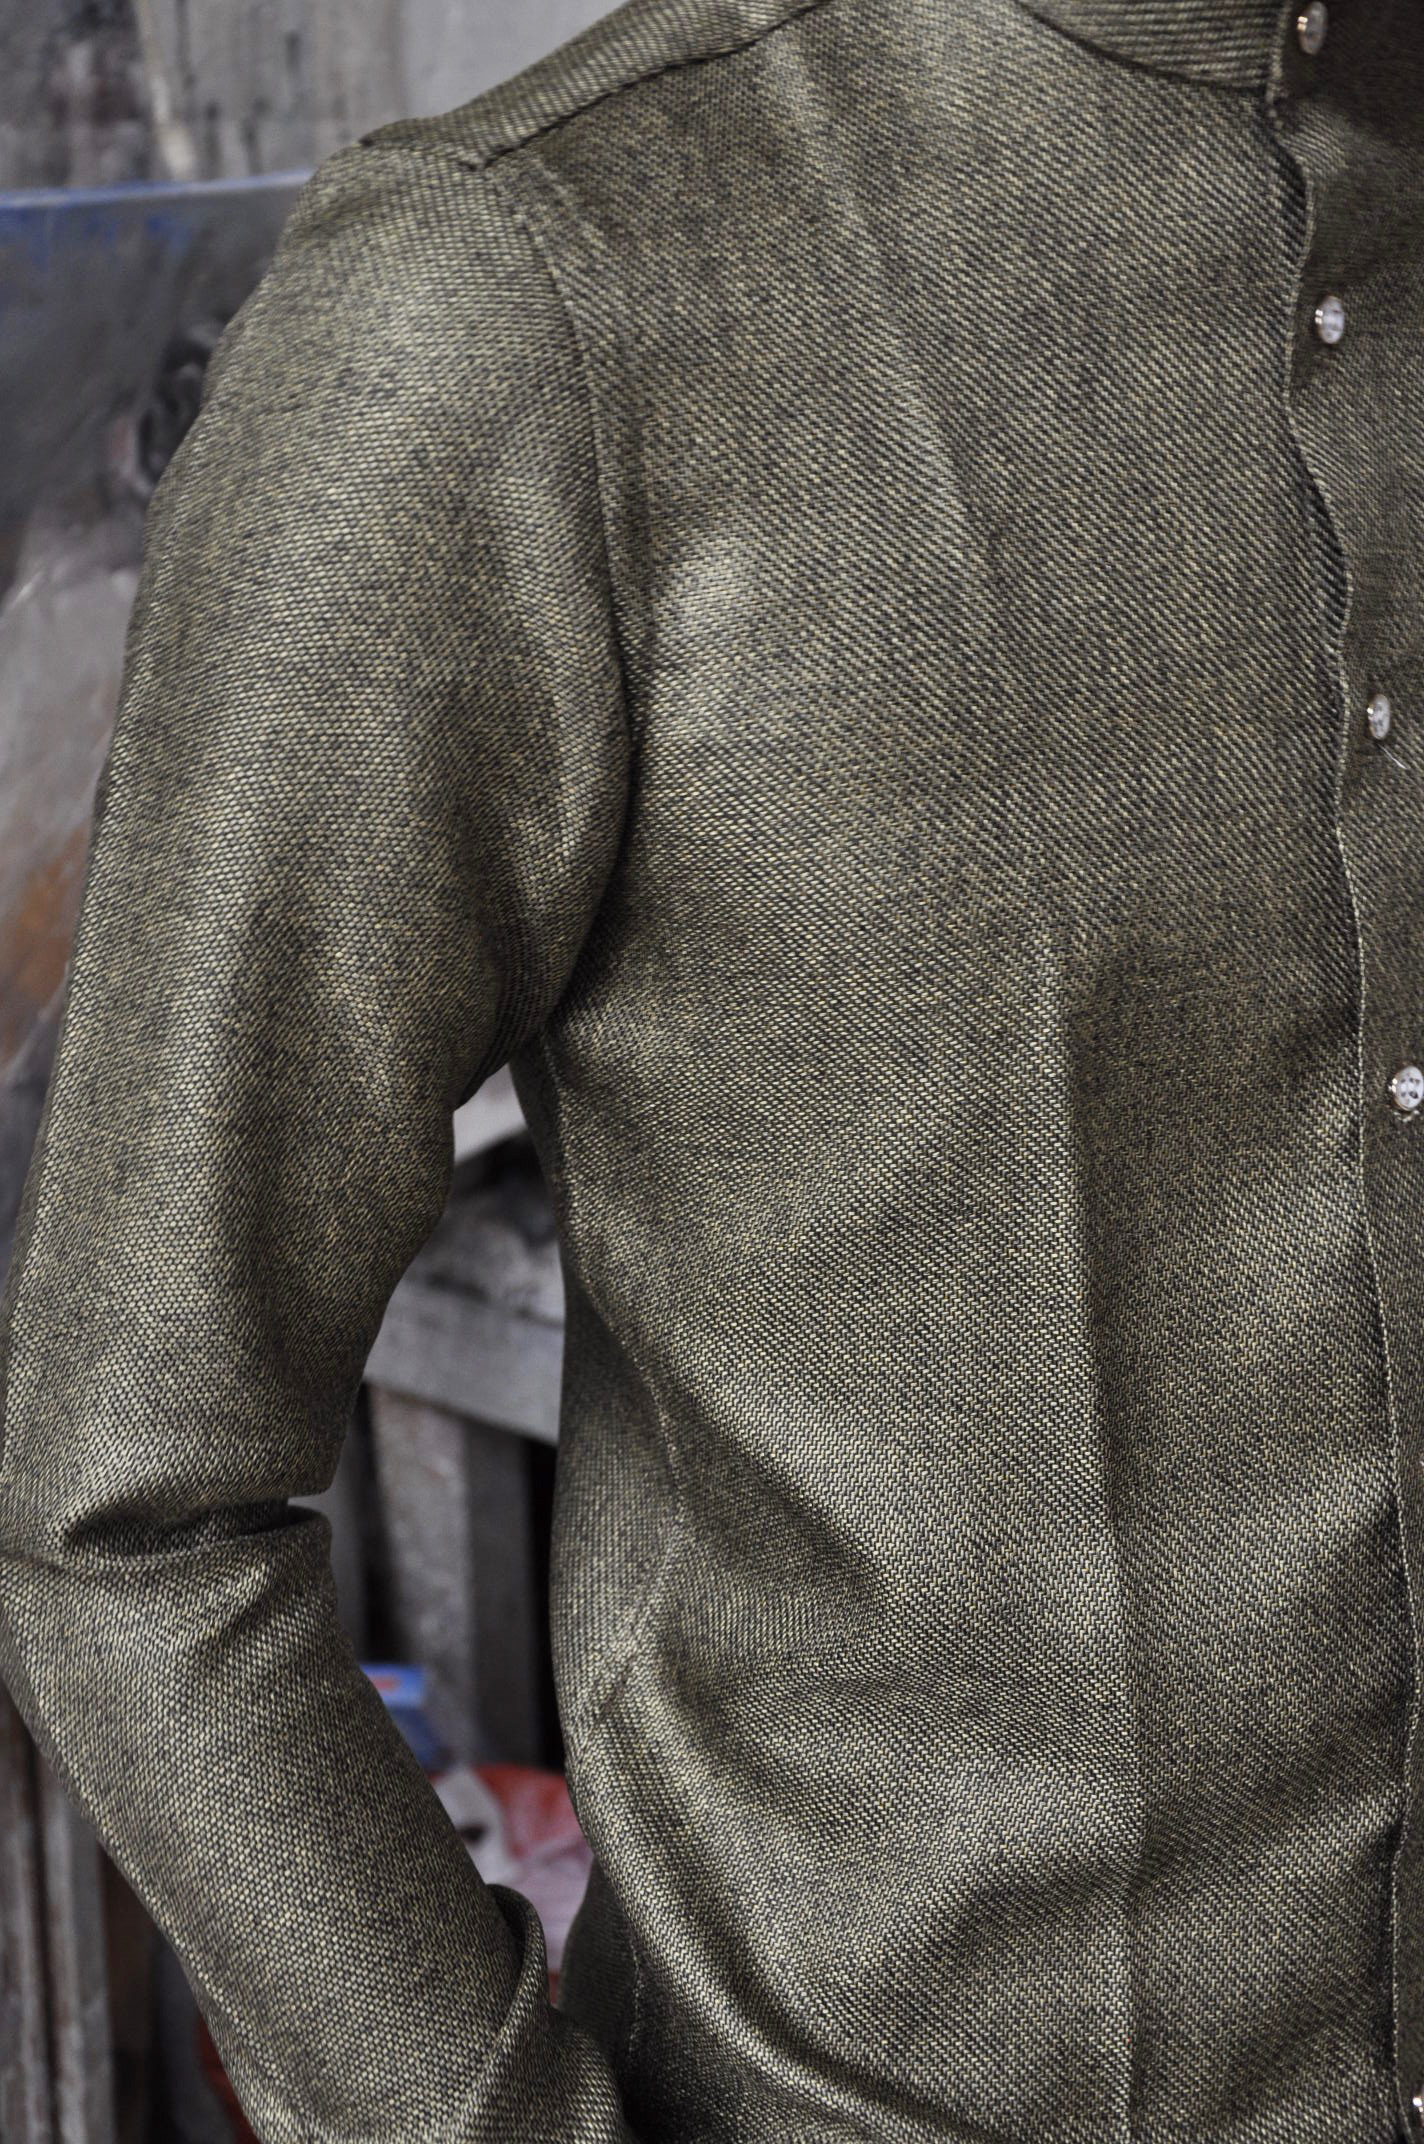 ALSAR COPPER SHIRT 100% INDIAN COTTON    -